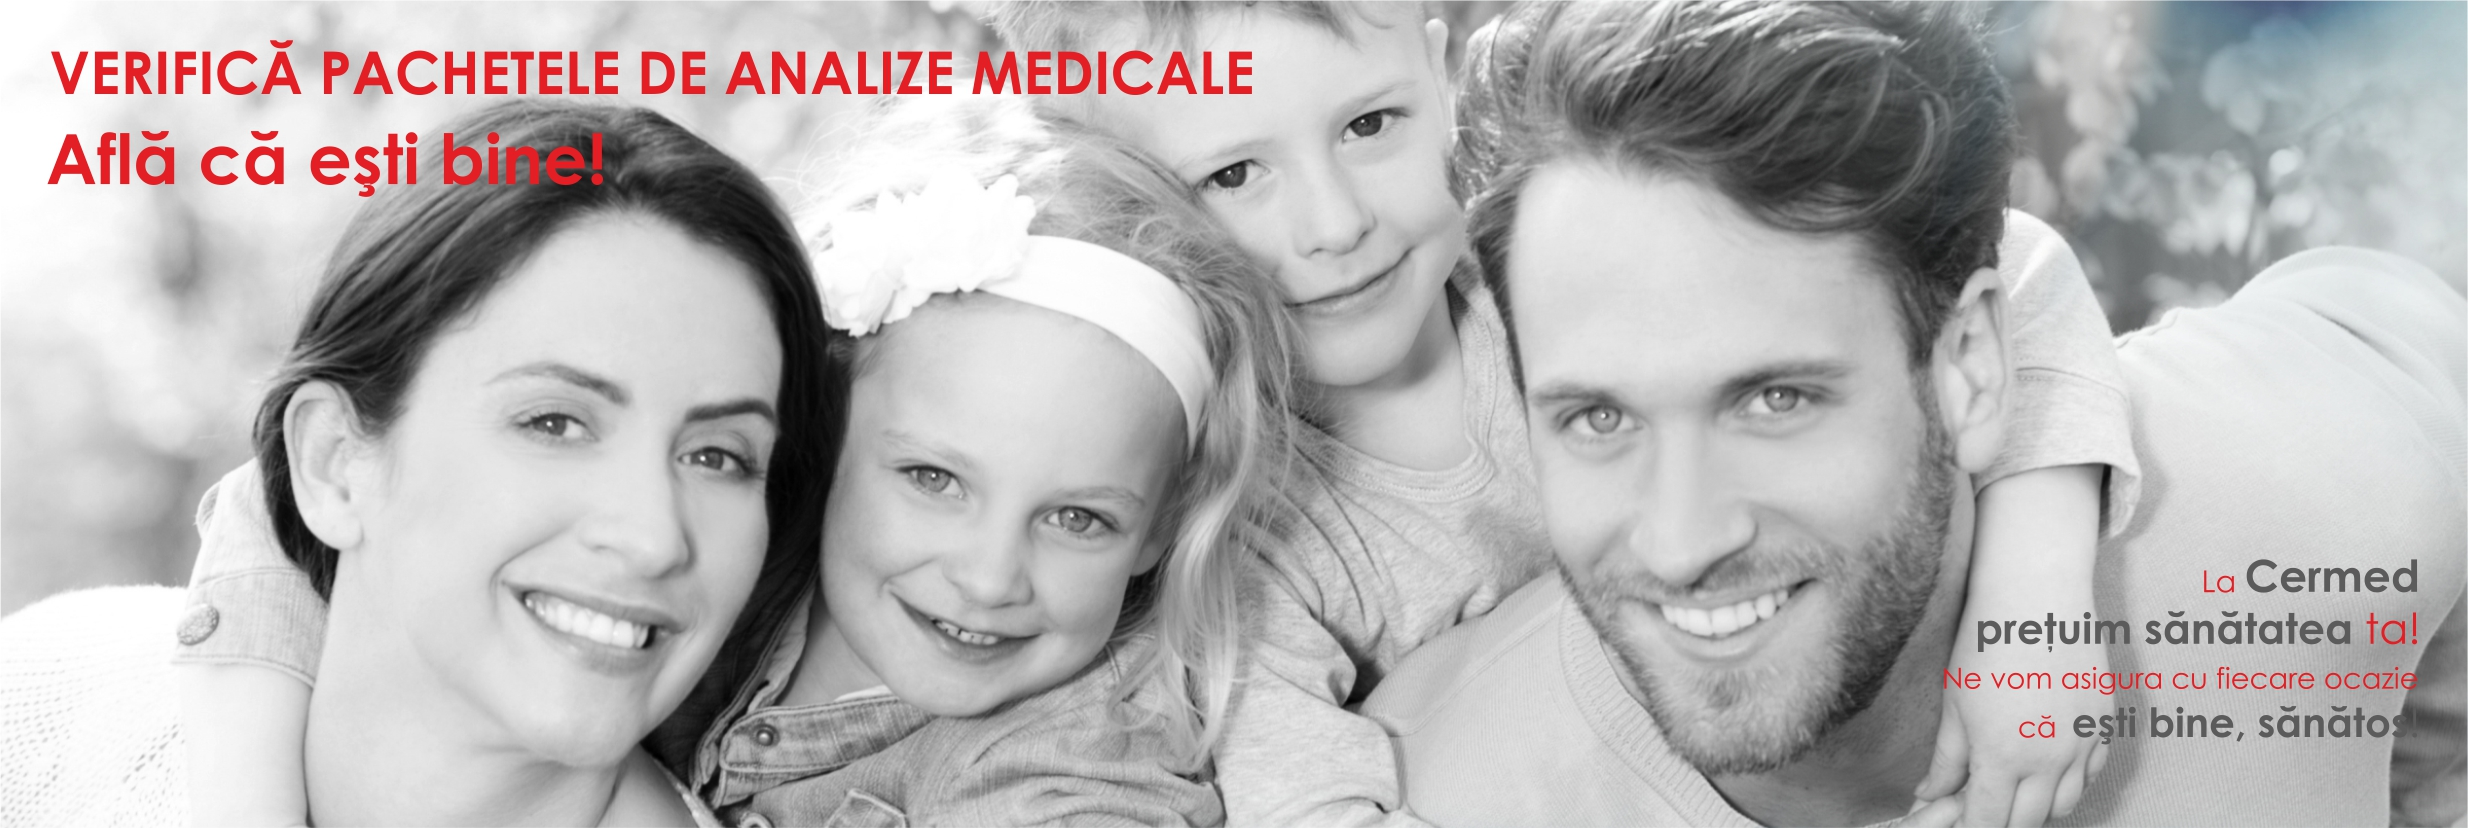 banner-SITE-ANALIZE